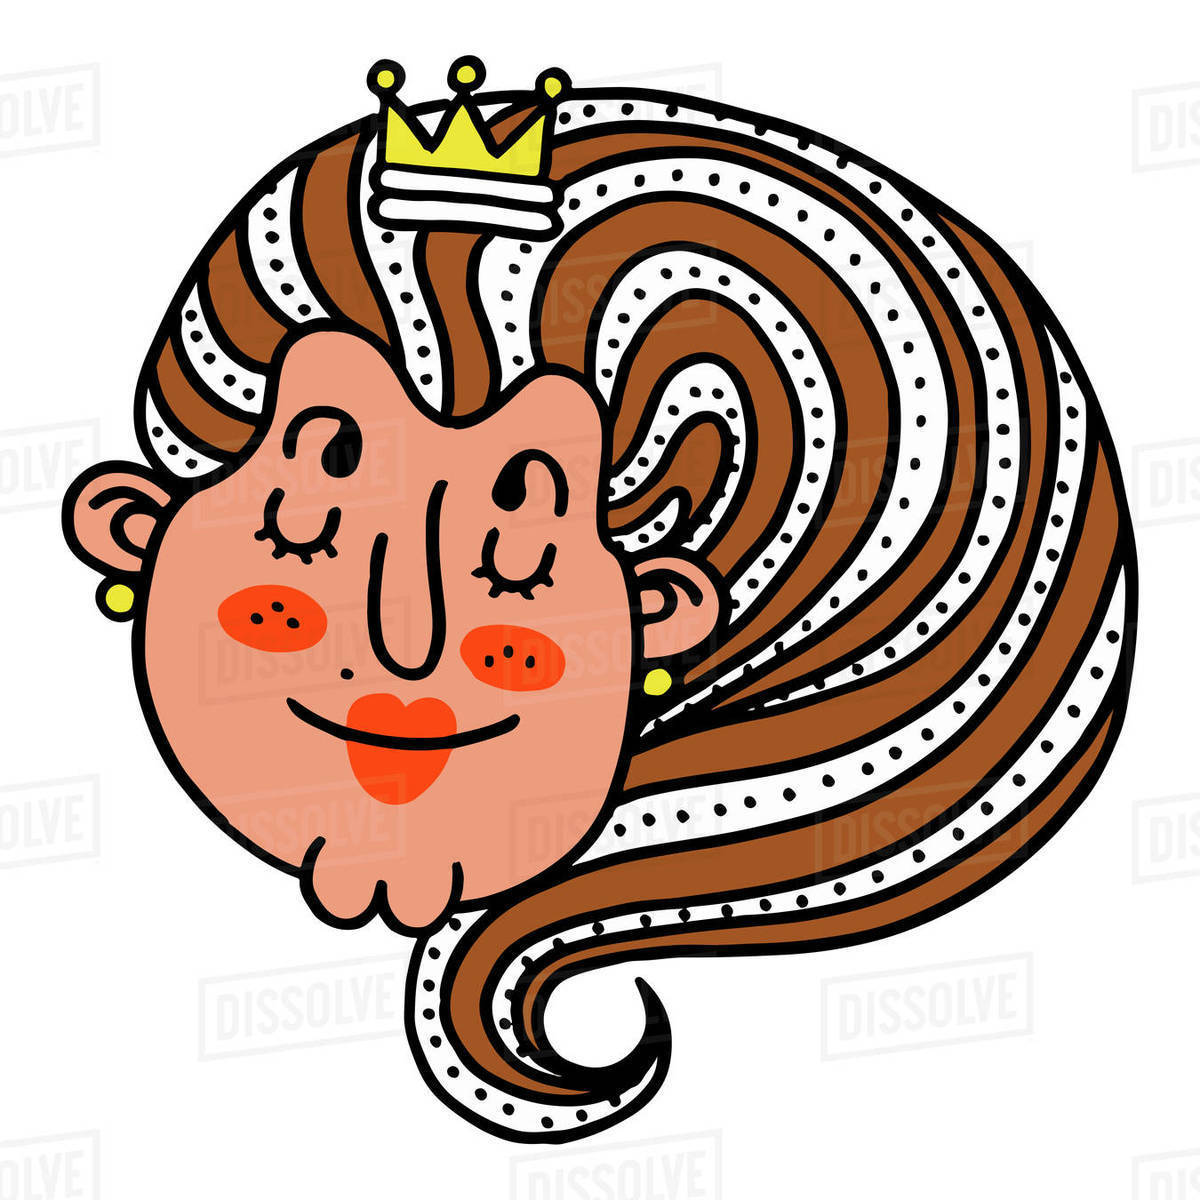 Cartoon illustration of queen against white background Royalty-free stock photo